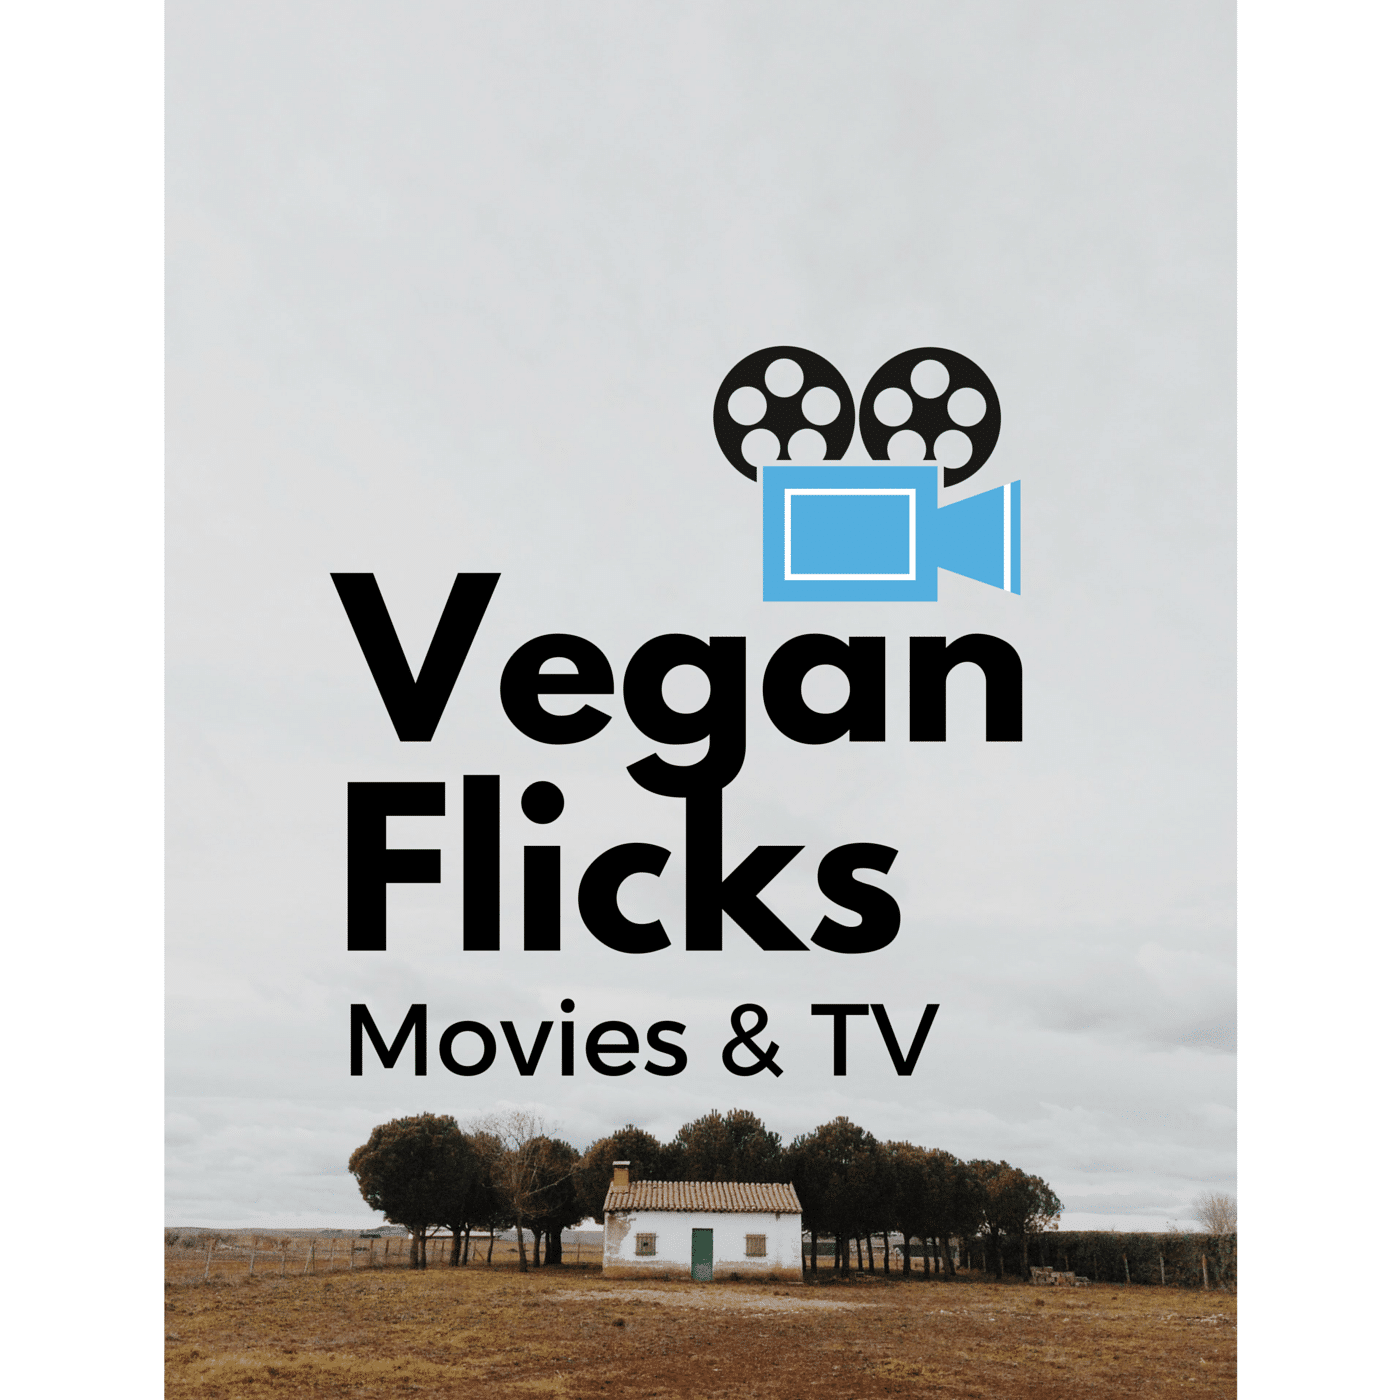 vegan movies